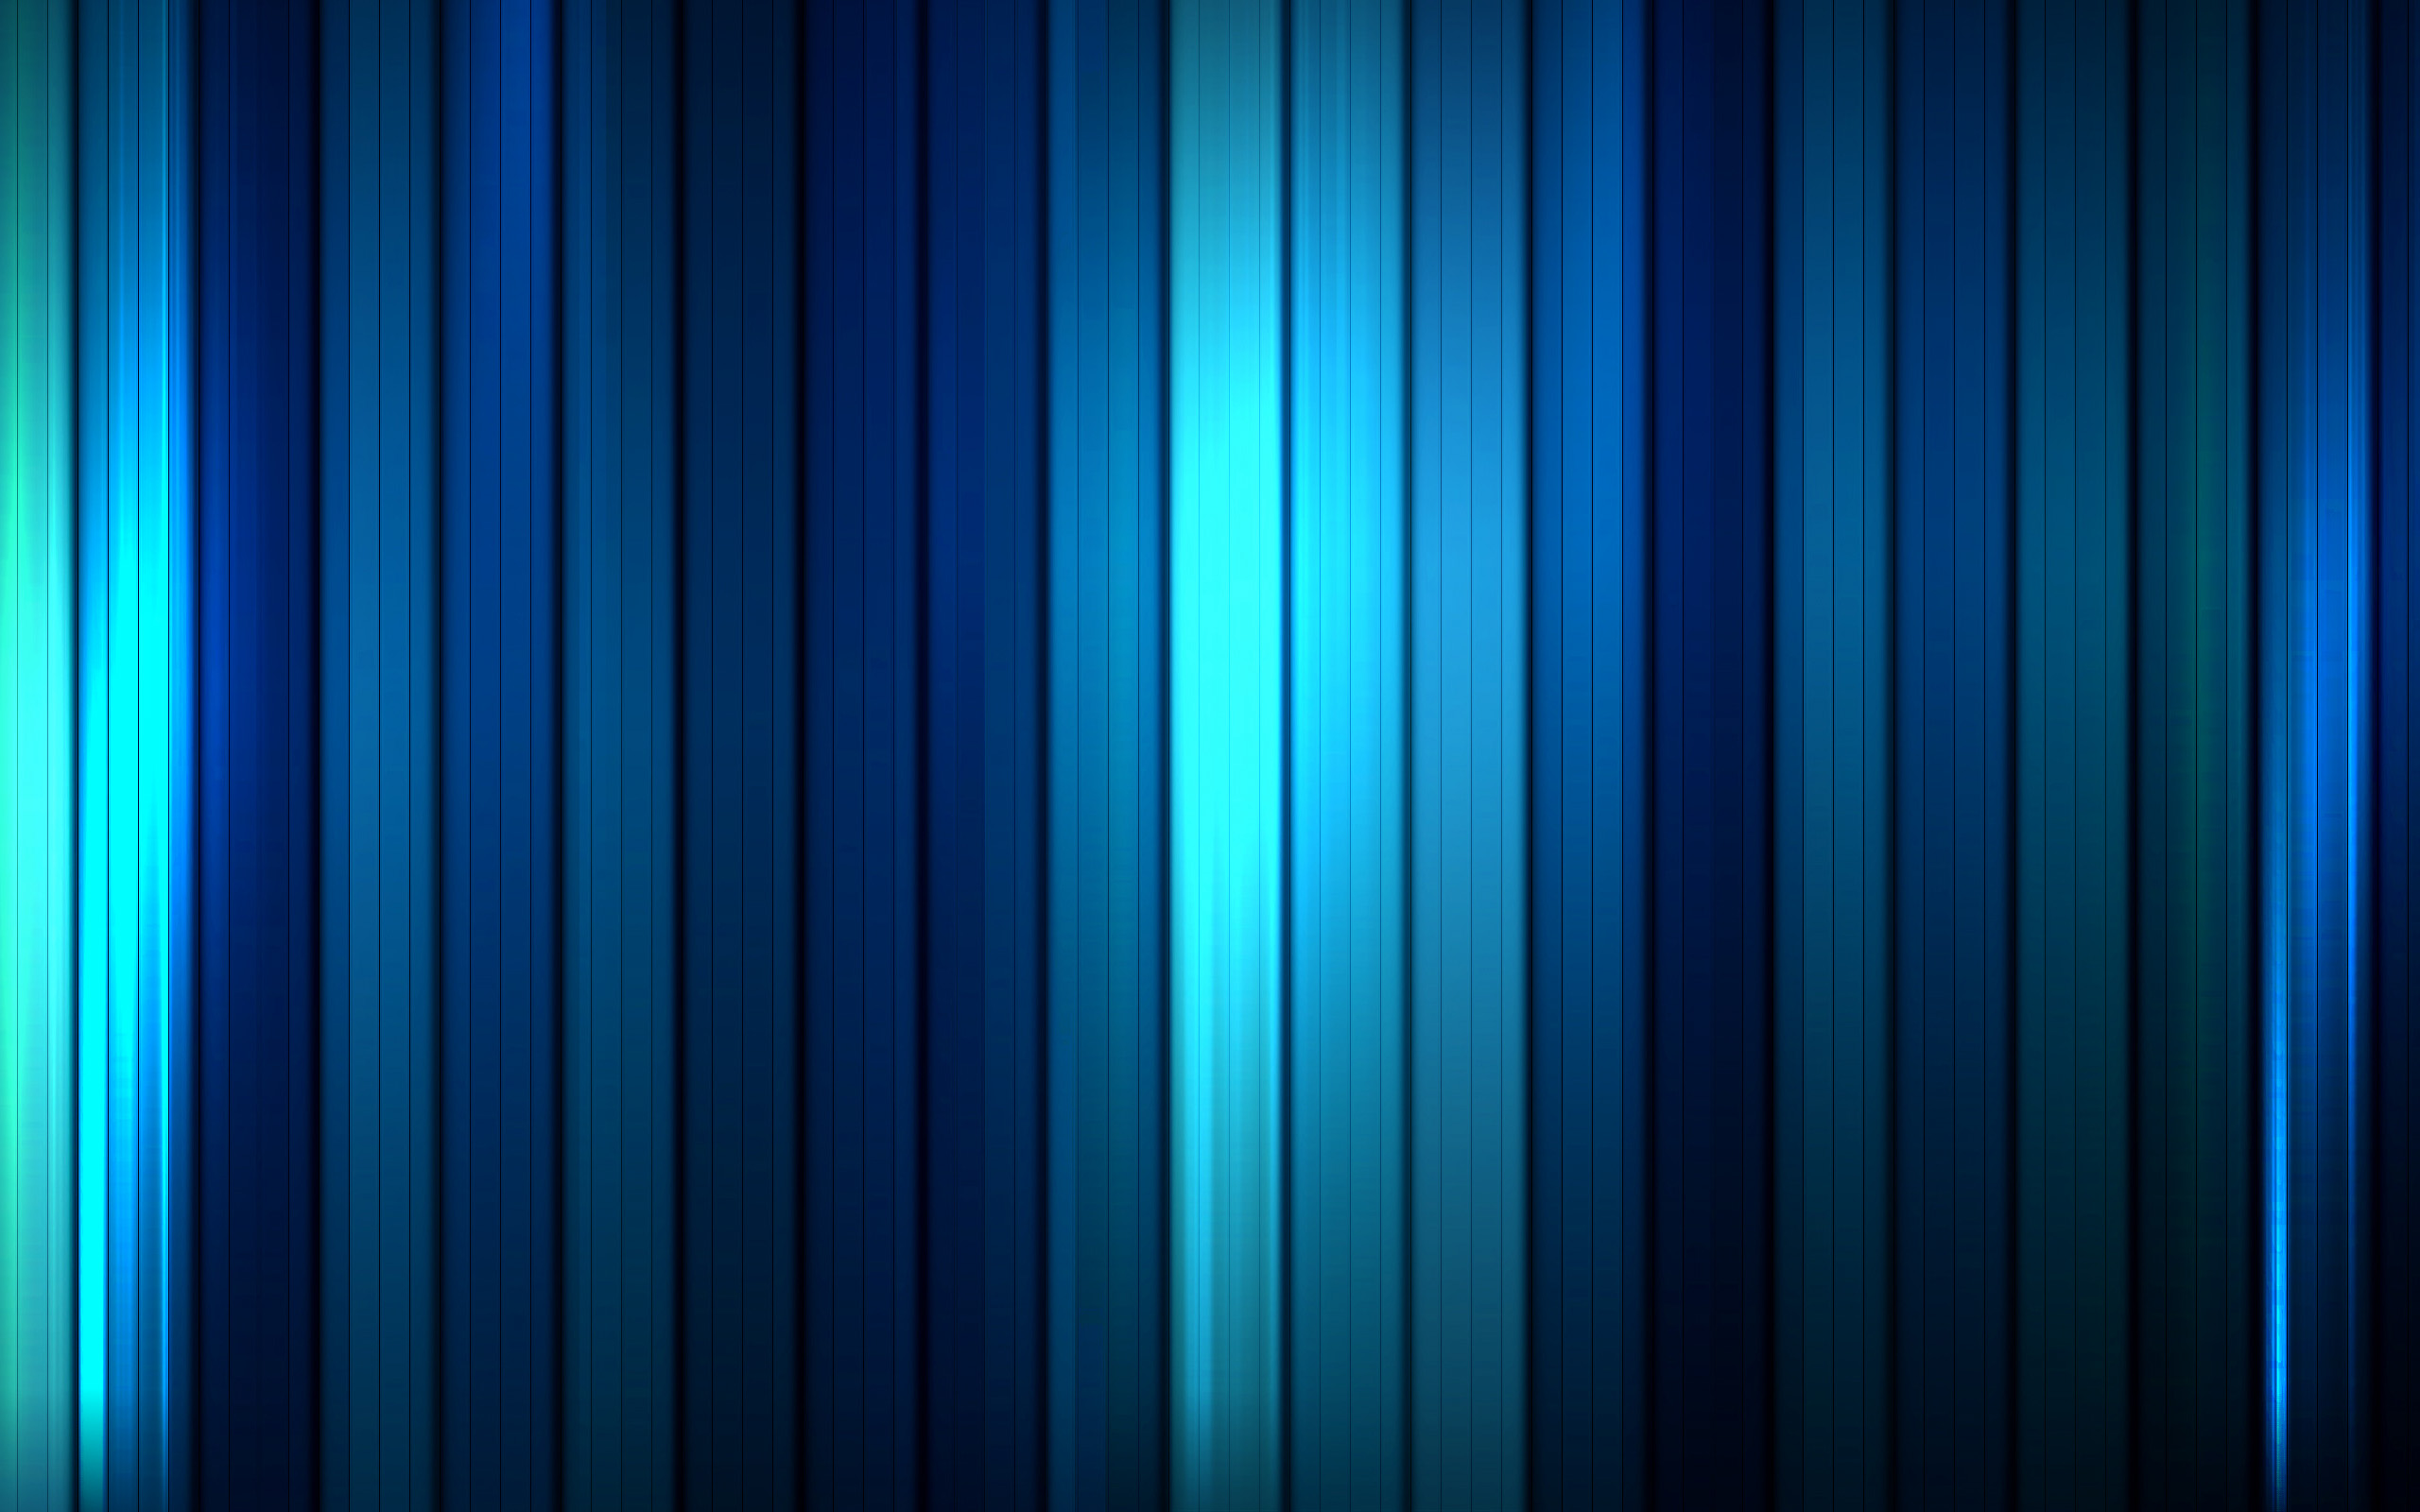 Stripe Wallpapers